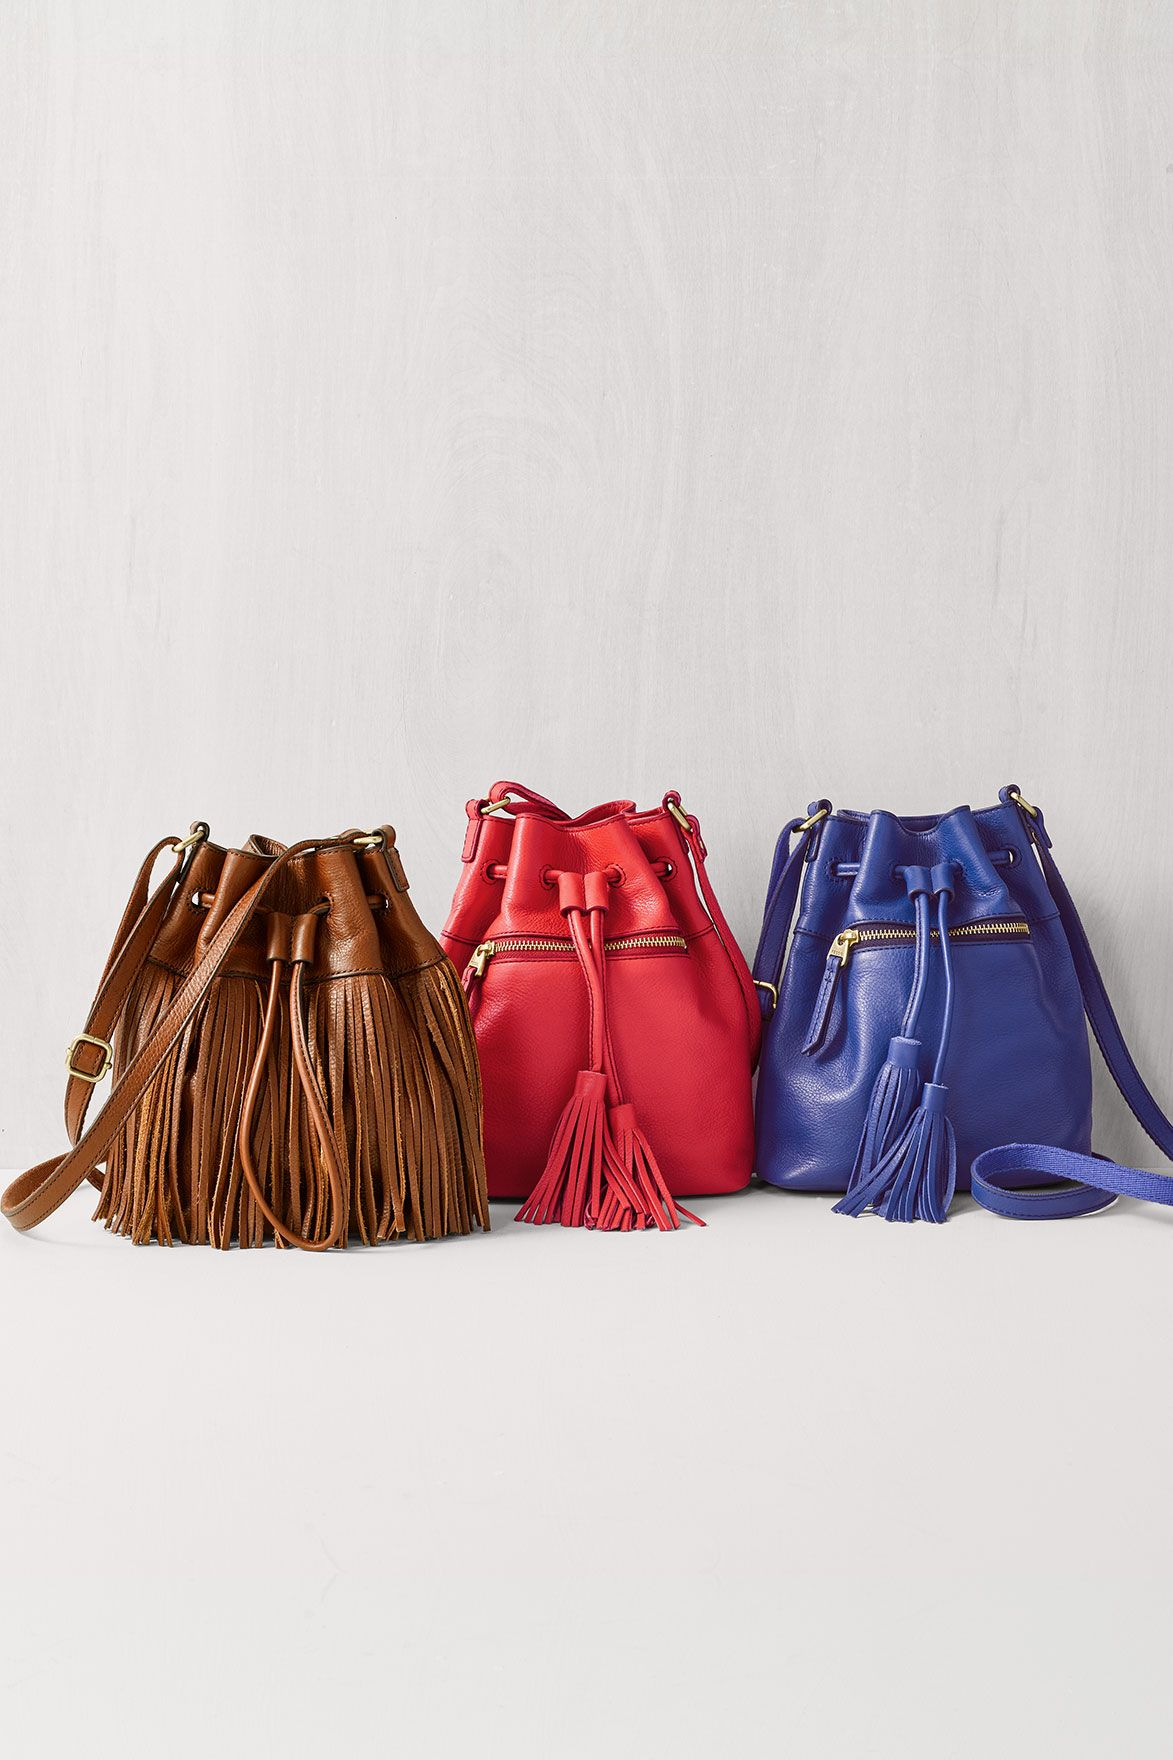 Eenie meenie miney mo; the mini Jules fringe crossbody is too cute ...